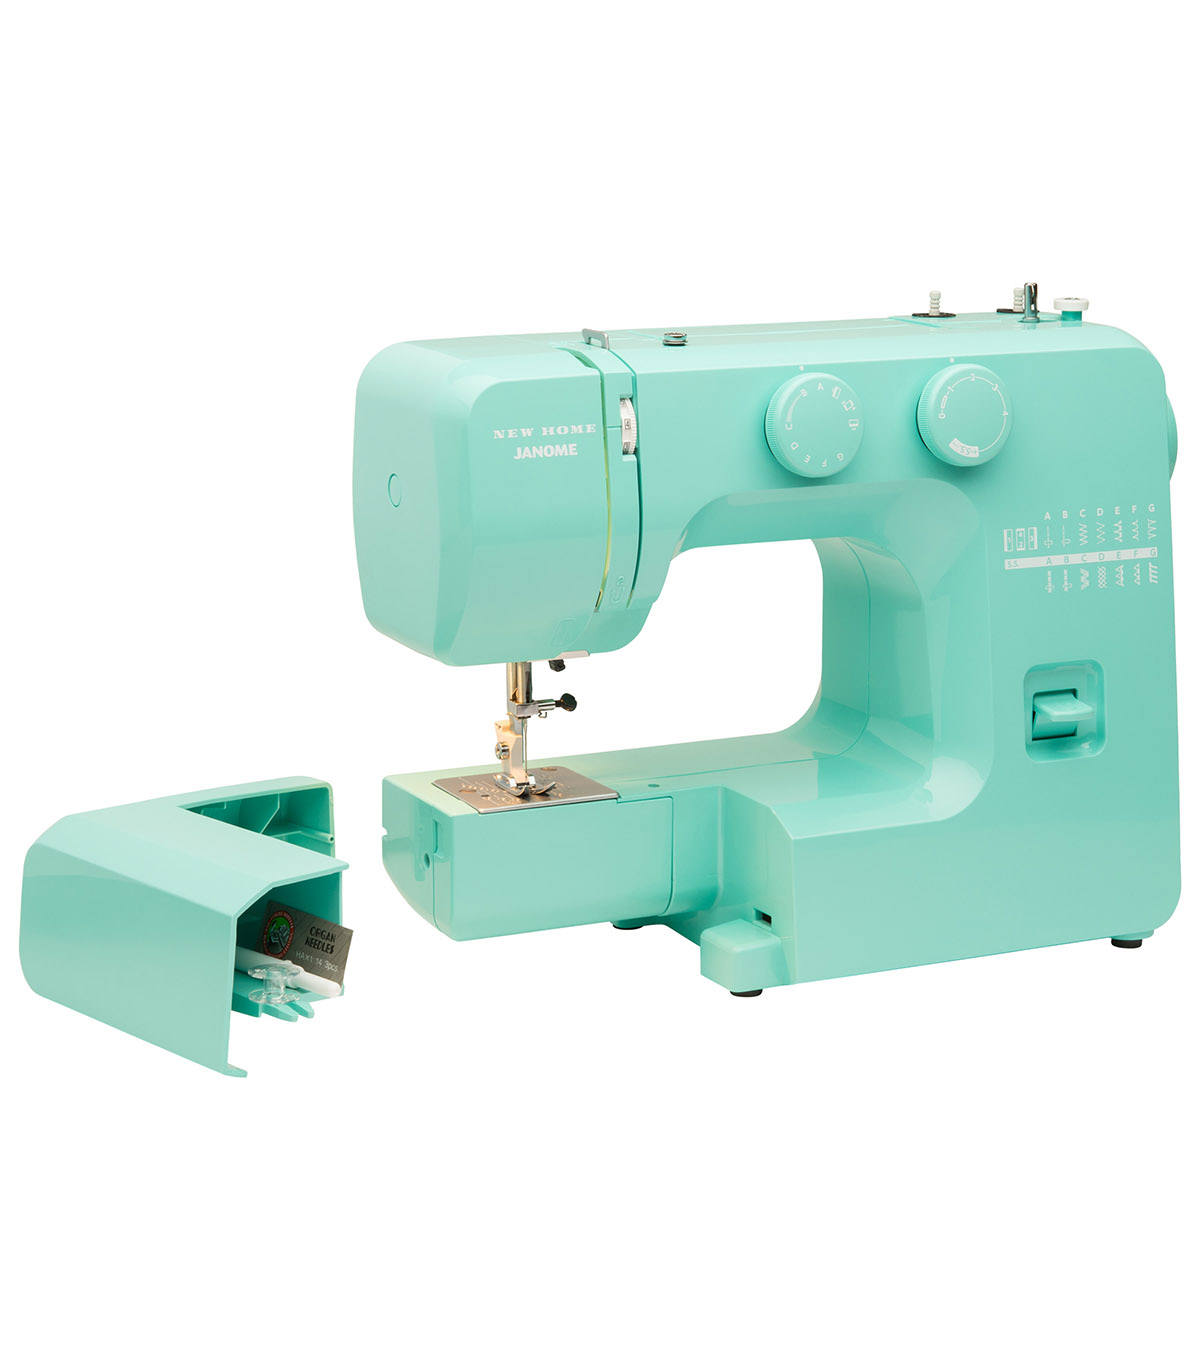 Janome Easy Sewing Machine with Bonus Accessory Bundle-Arctic Crystal